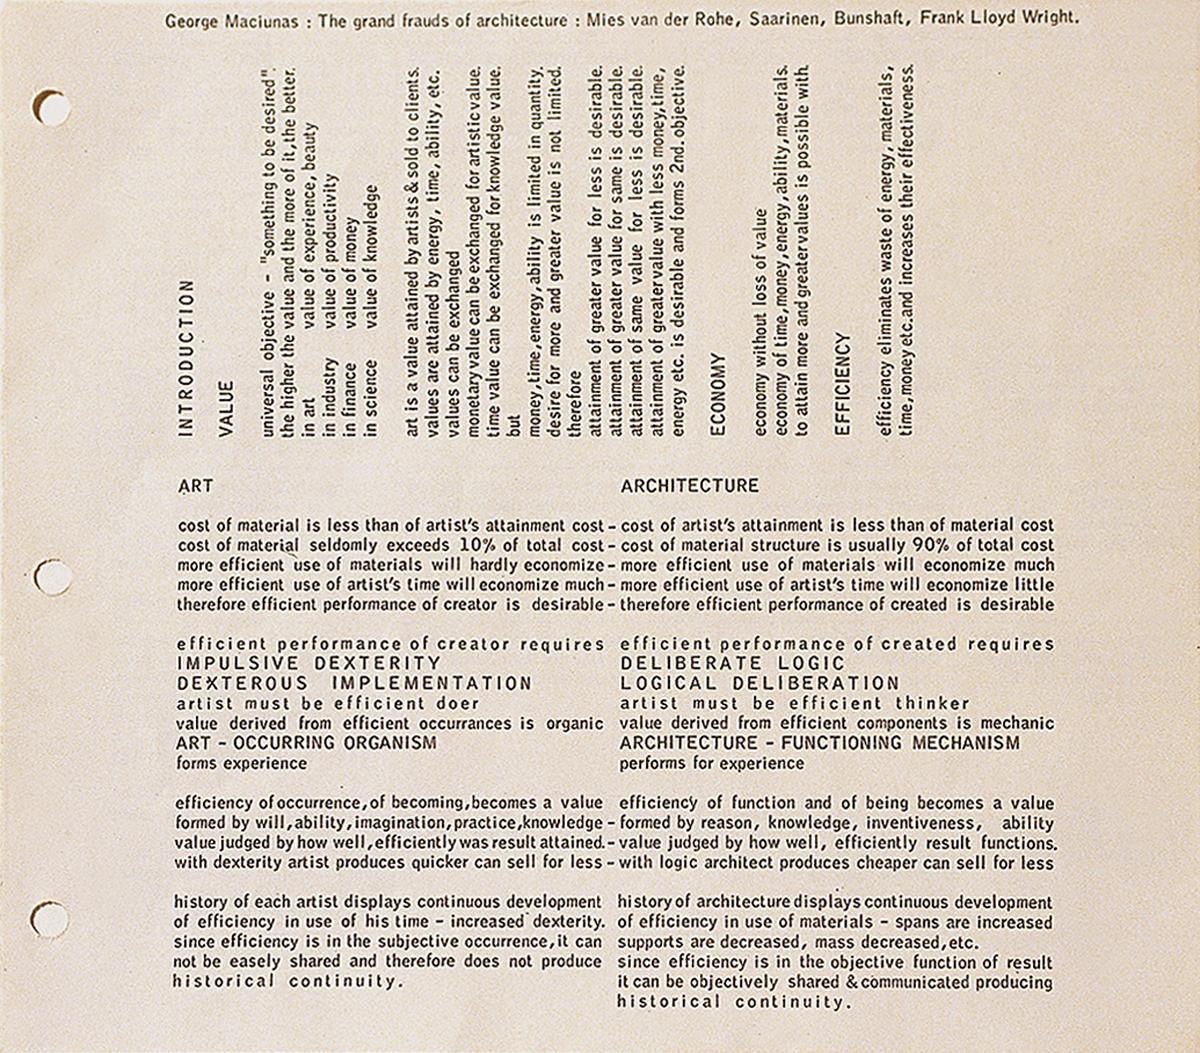 essay critique on art and architecture by george maciunas  essay critique on art and architecture by george maciunas 1964